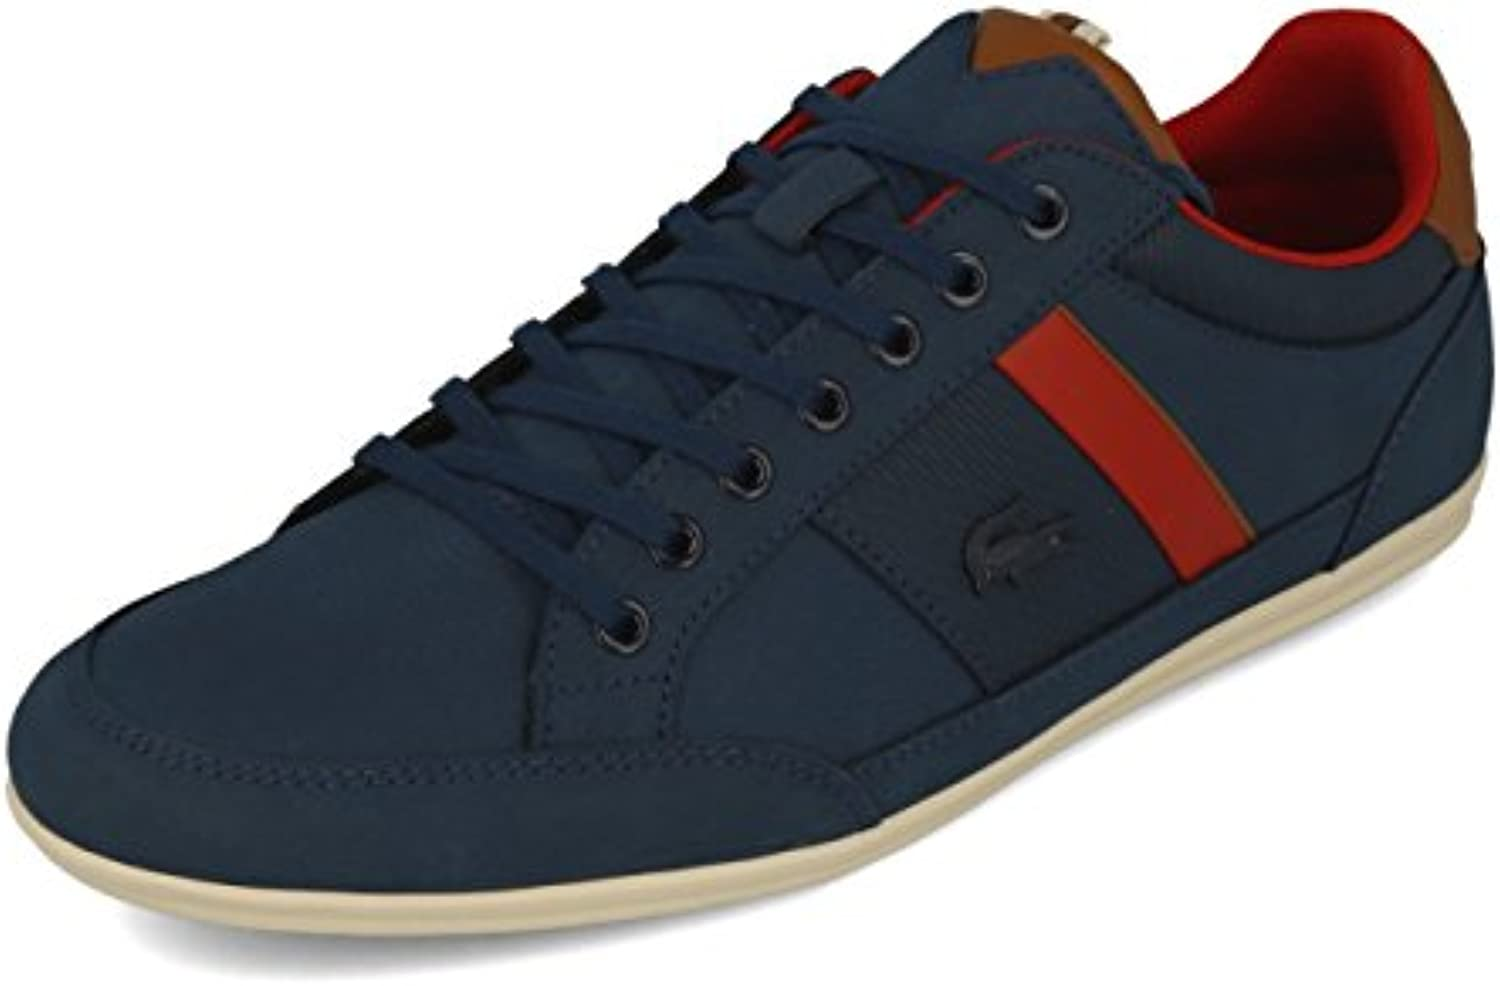 Lacoste Chaymon 318 2 Cam Navy Brown